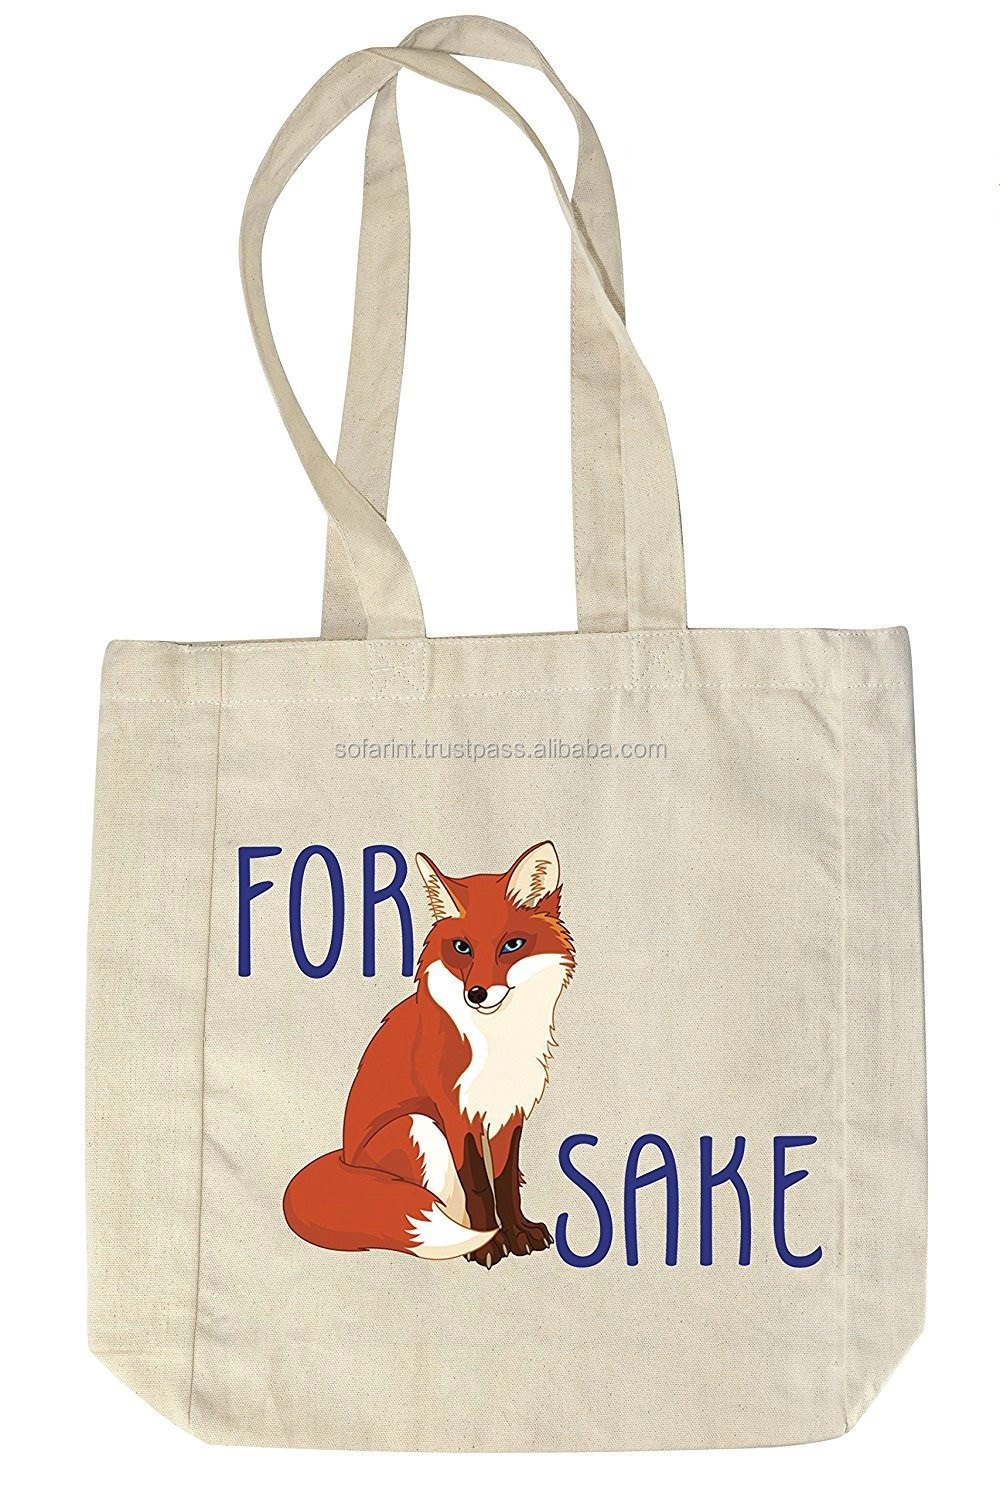 Cotton Grocery Bags Shopping Bag Calico Bag